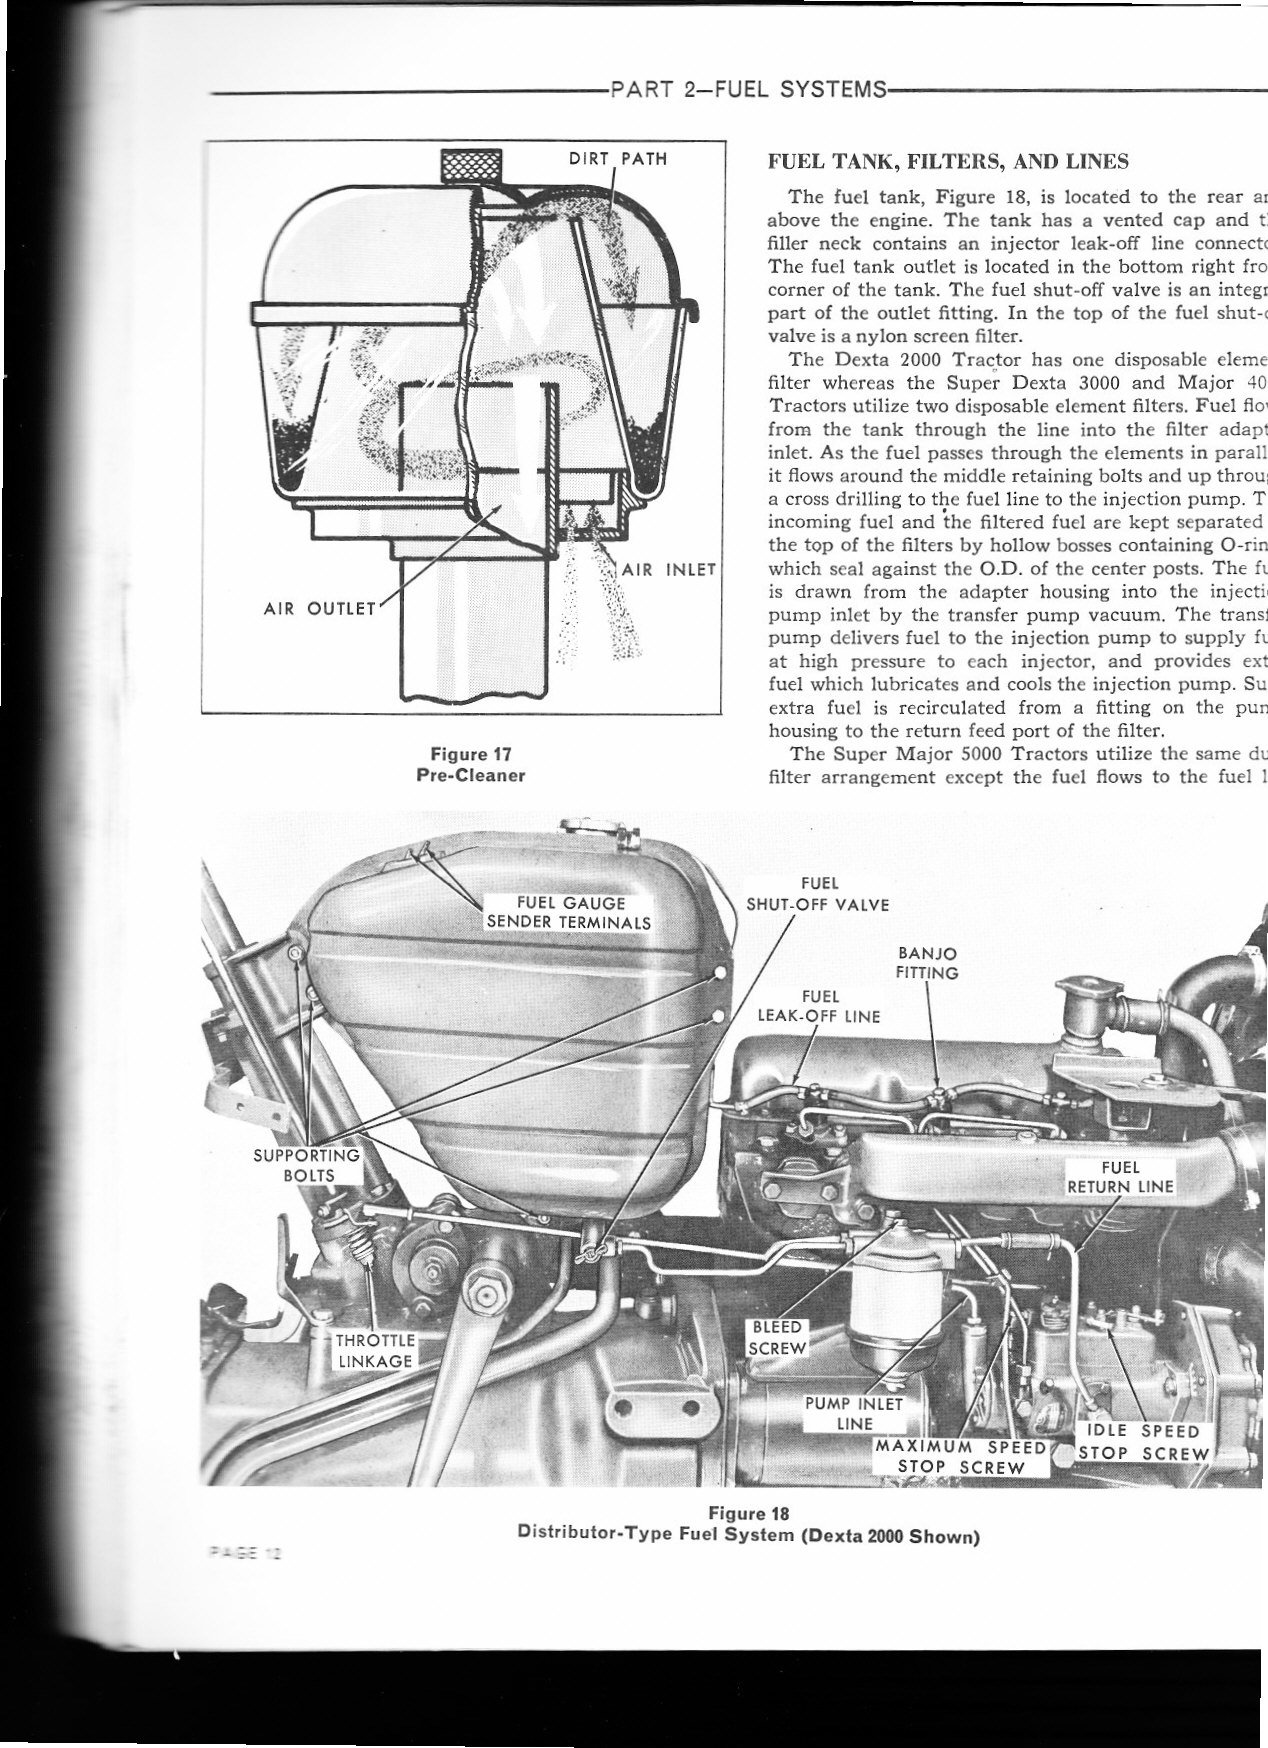 I Have A Ford 4000 Diesel Tractor 3 Cyl New Cav Injector Pump Wiring Diagram 1966 Is This Closer To What Your Working On Graphic